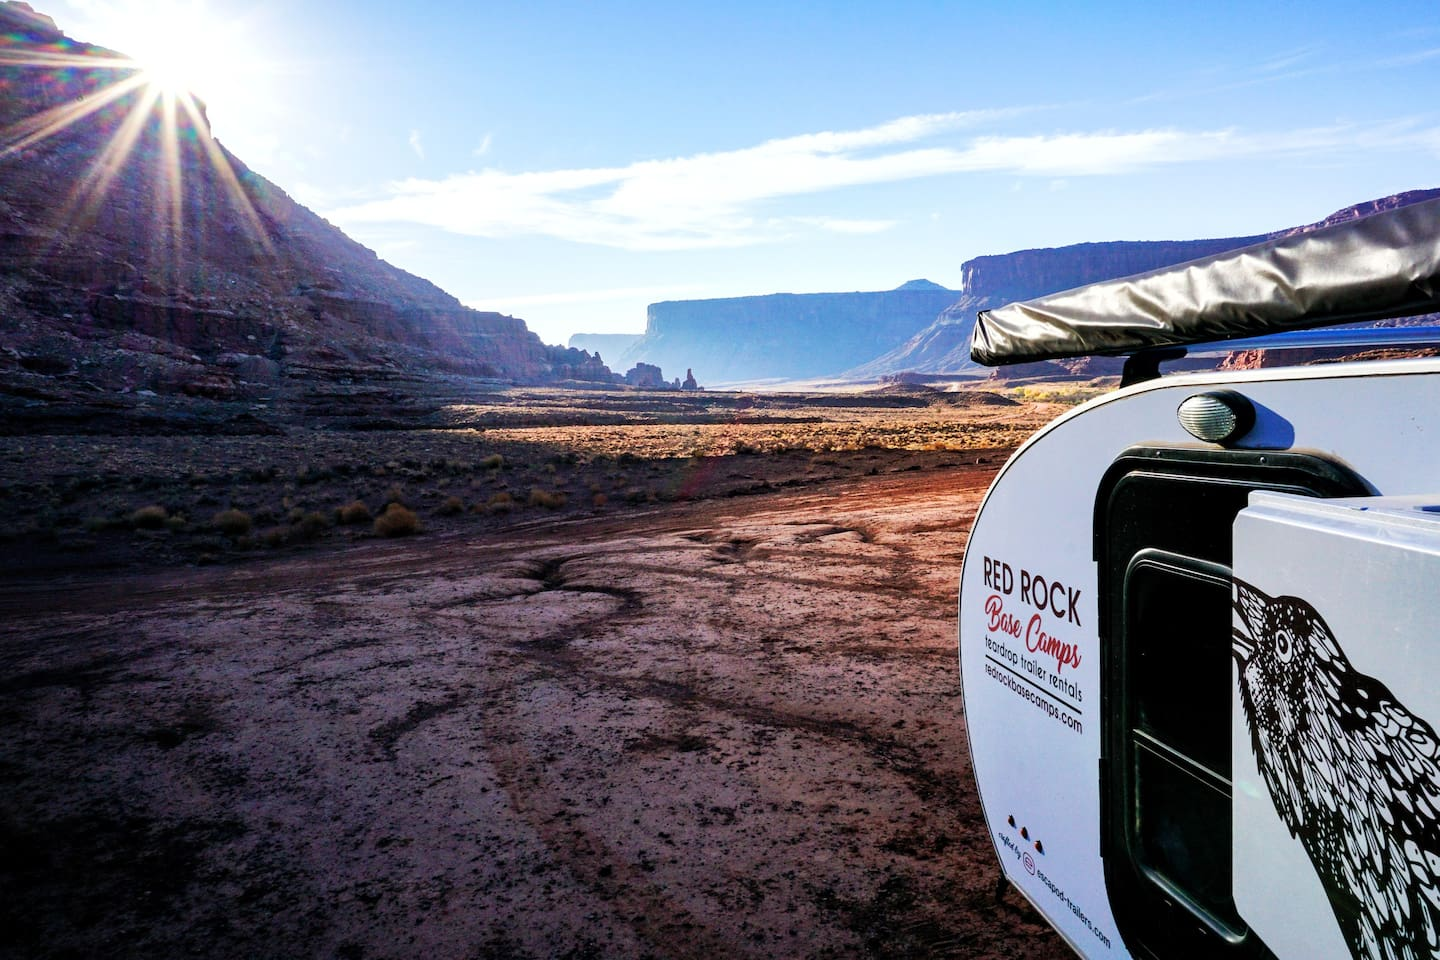 Really experience Moab. Camp in comfort among the red rocks.